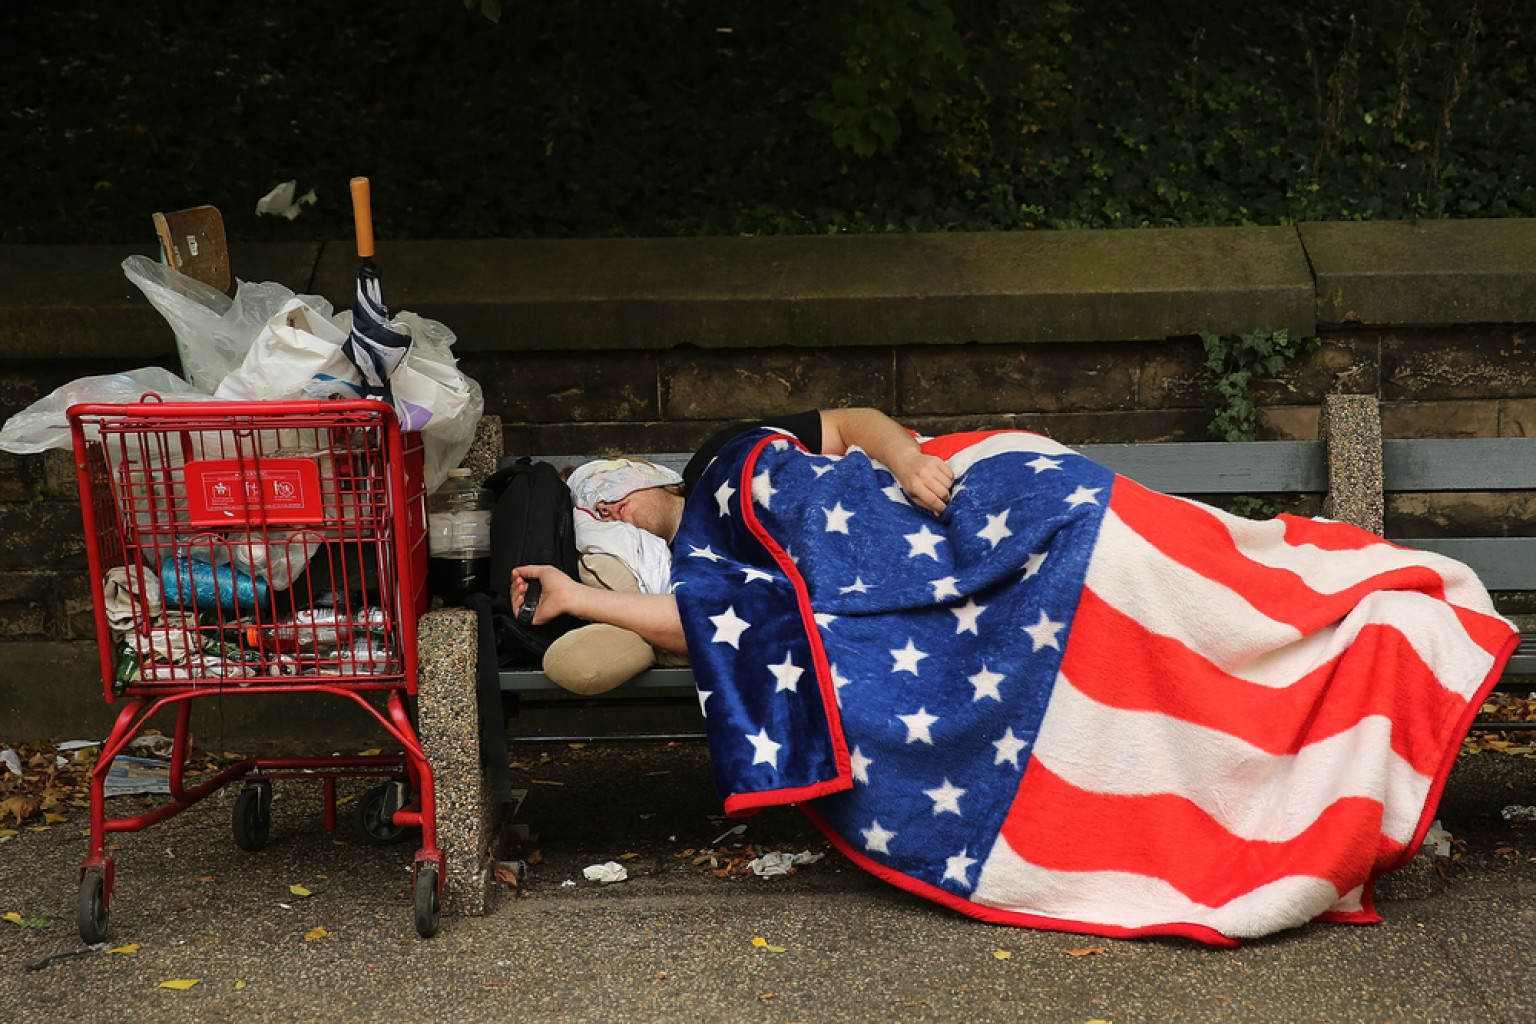 o-POVERTY-AMERICA-facebook.jpg